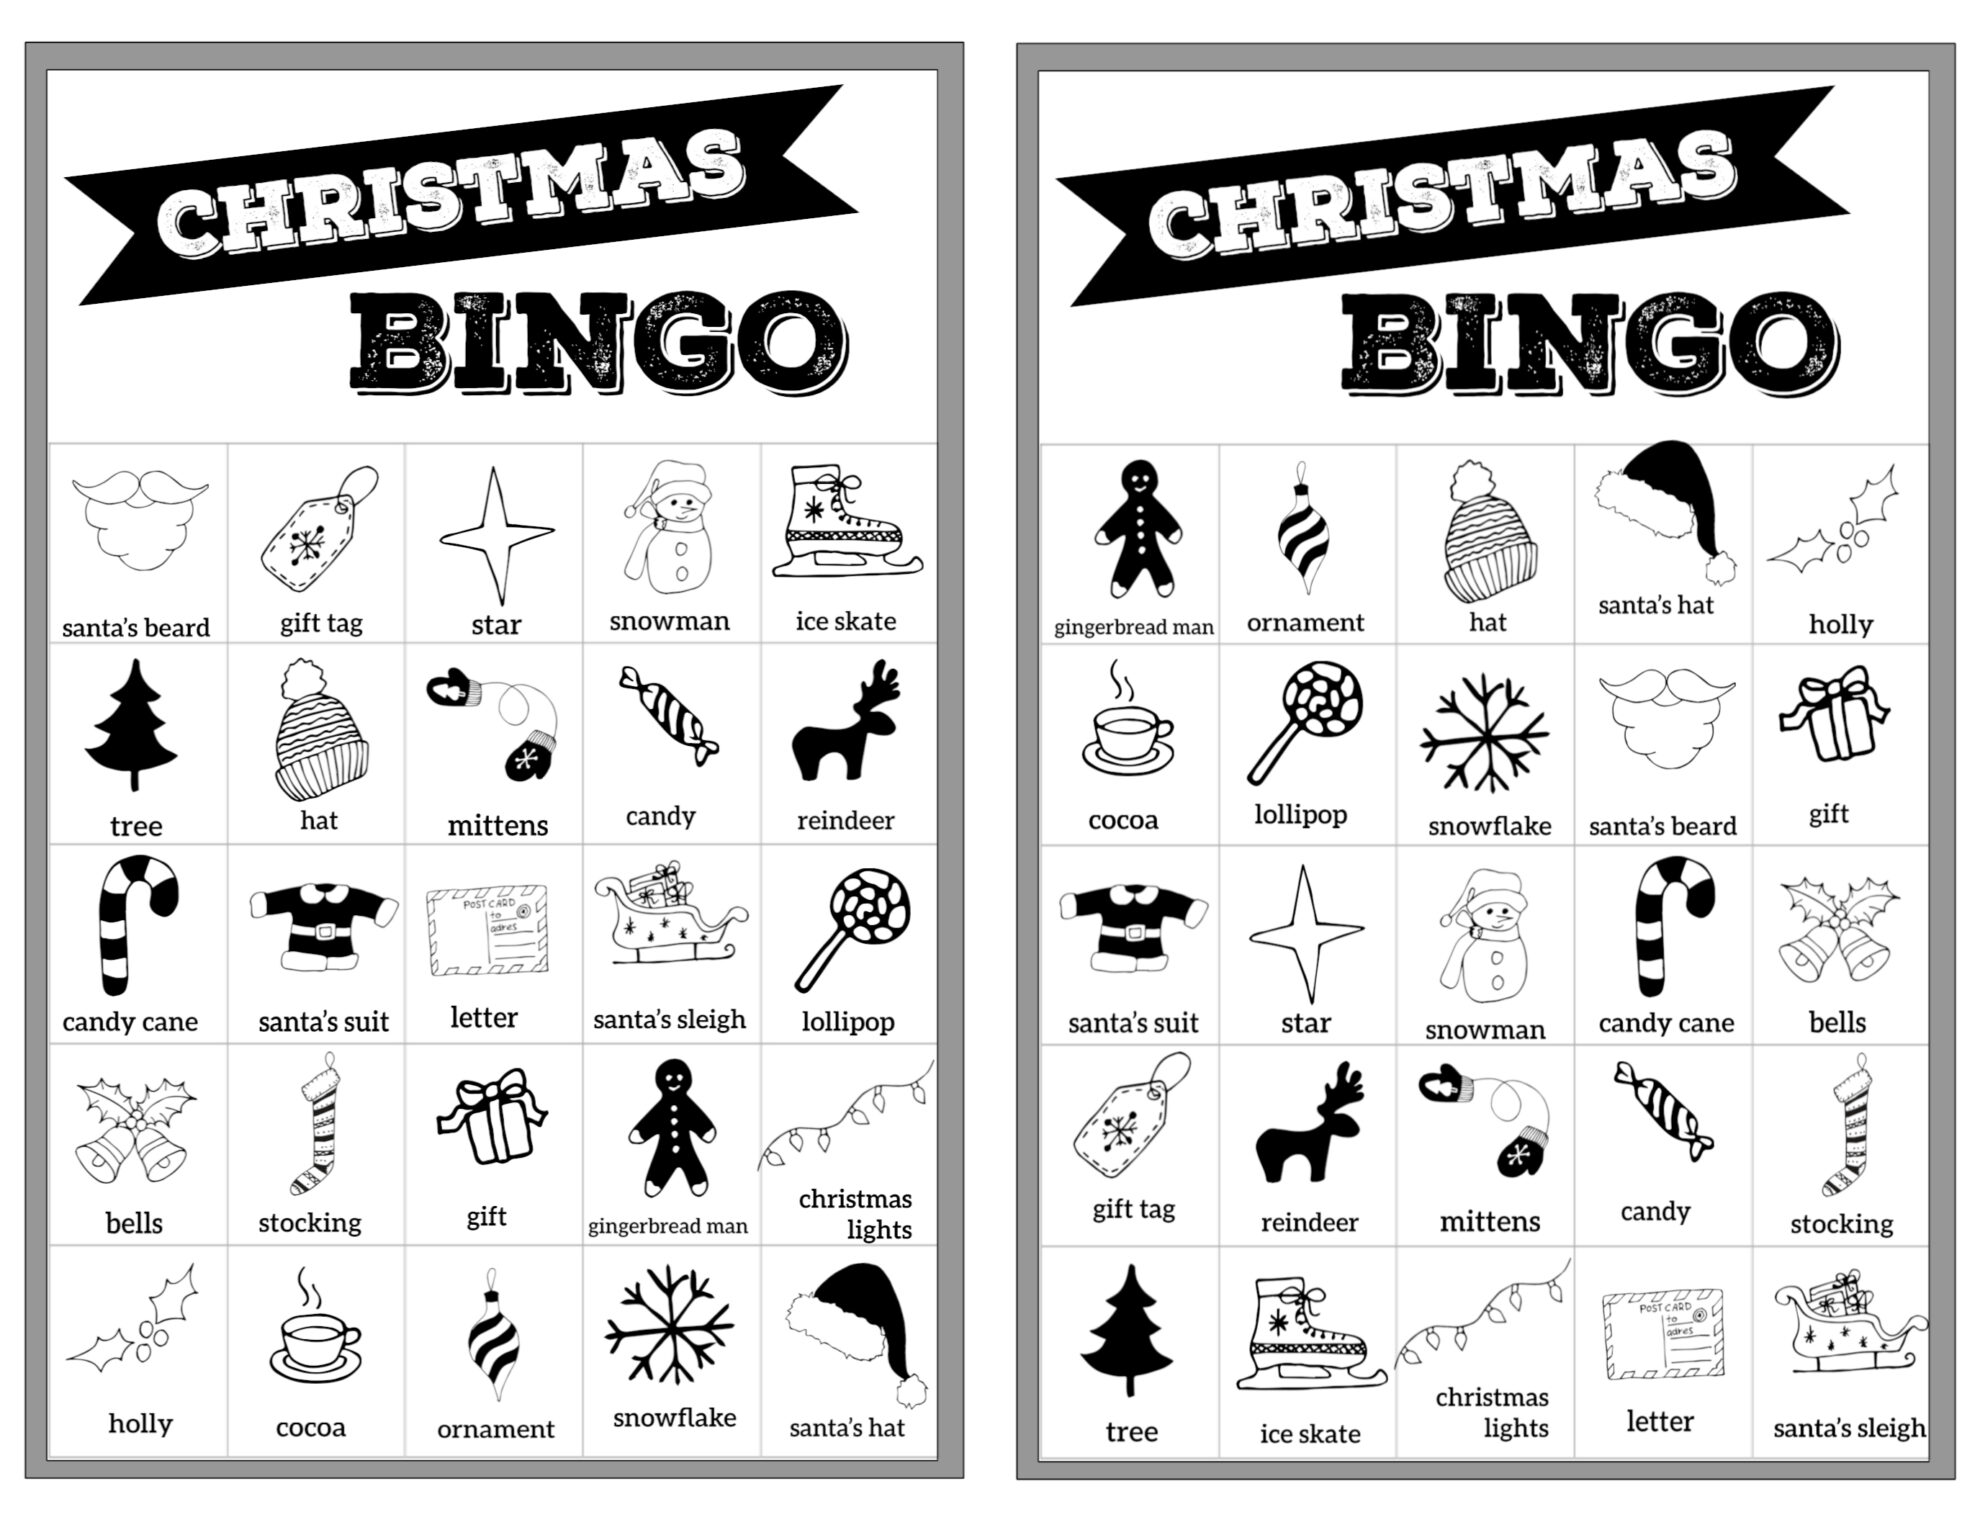 photo relating to Christmas Bingo Card Printable identified as Totally free Xmas Bingo Printable Playing cards - Paper Path Design and style